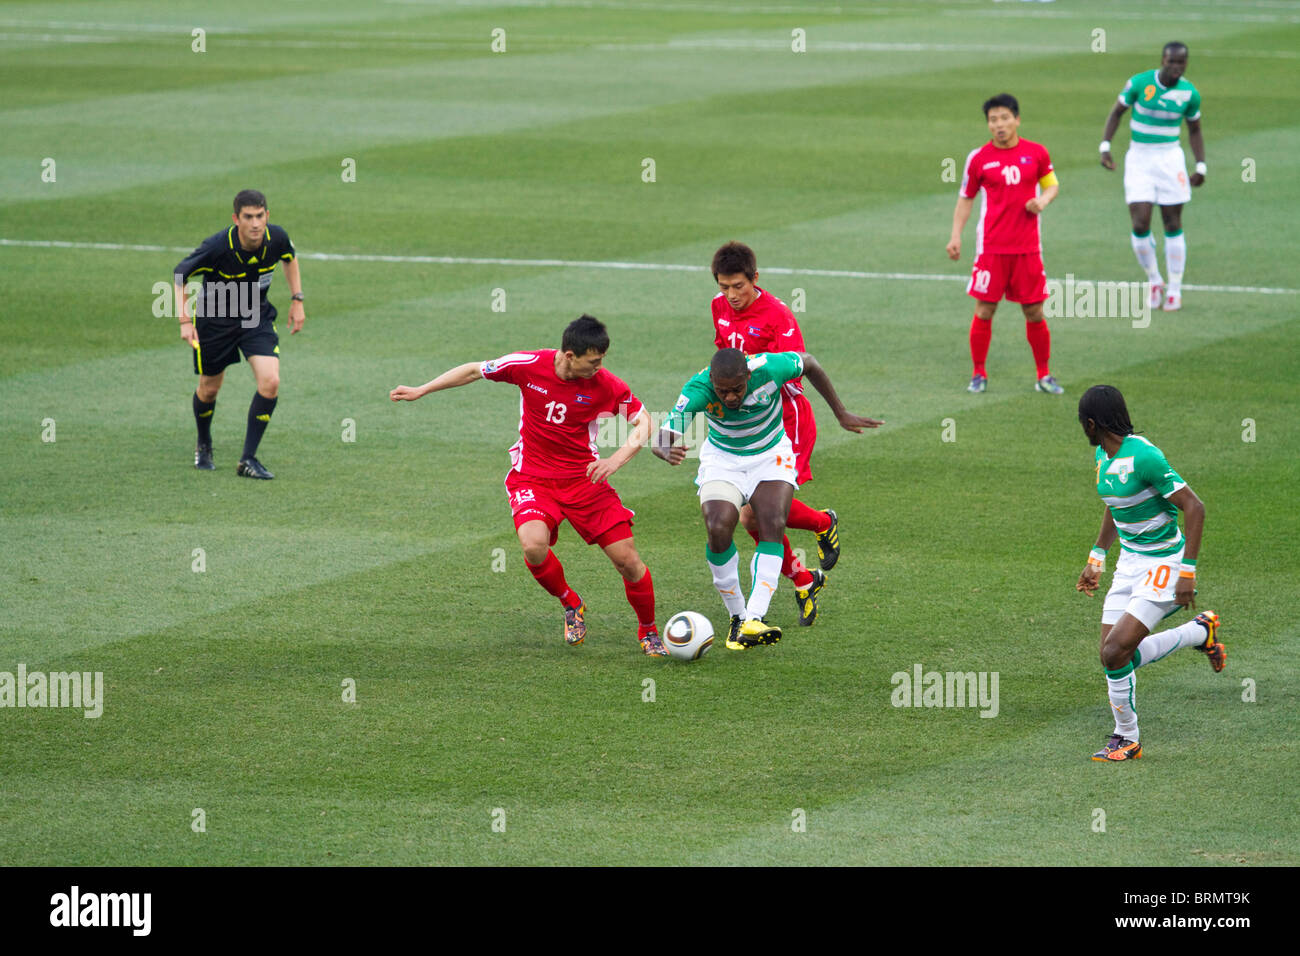 Romaric passes a through ball to Gervinho the C⌠te d'Ivoire striker during the 2010 World Cup match against - Stock Image